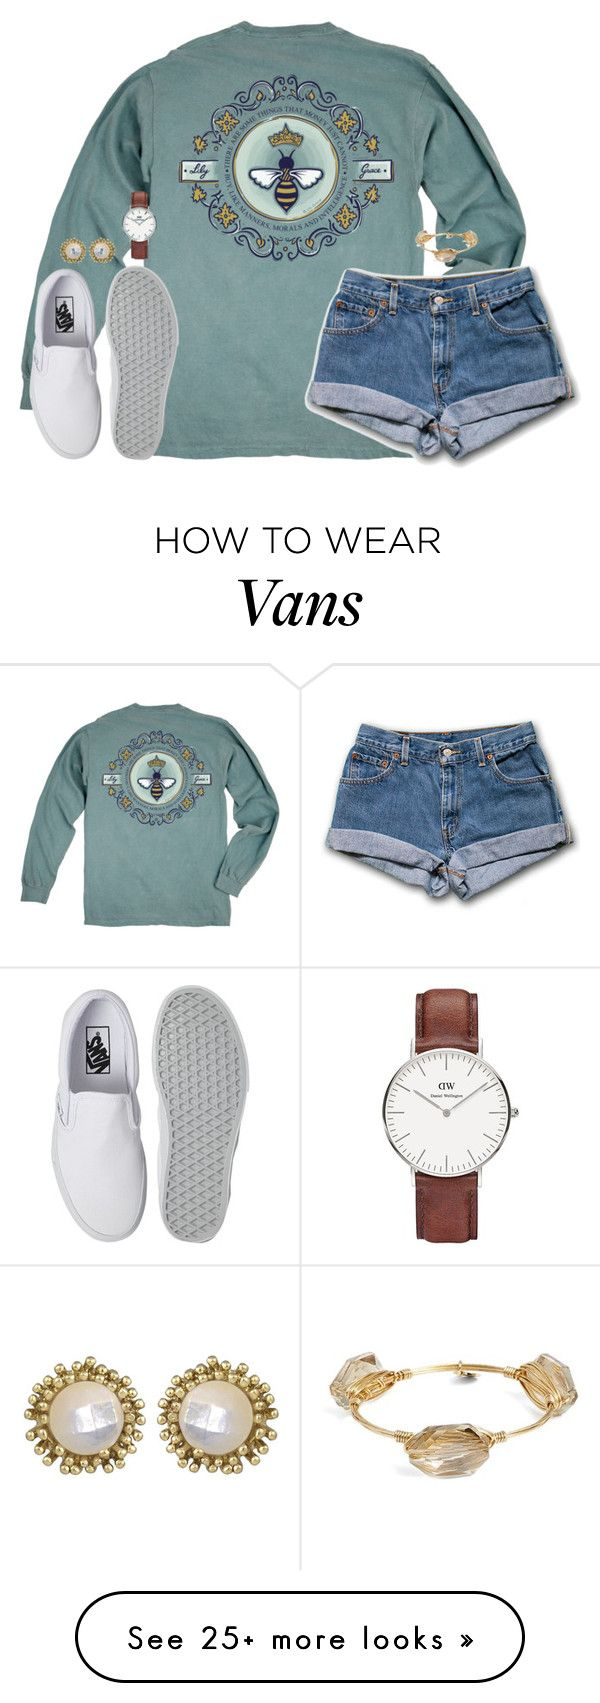 """""""I wish we could turn back time to the good ol' days"""" by kaley-ii on Polyvore featuring Queen Bee, Vans, Daniel Wellington, Kendra Scott and Bourbon and Boweties"""